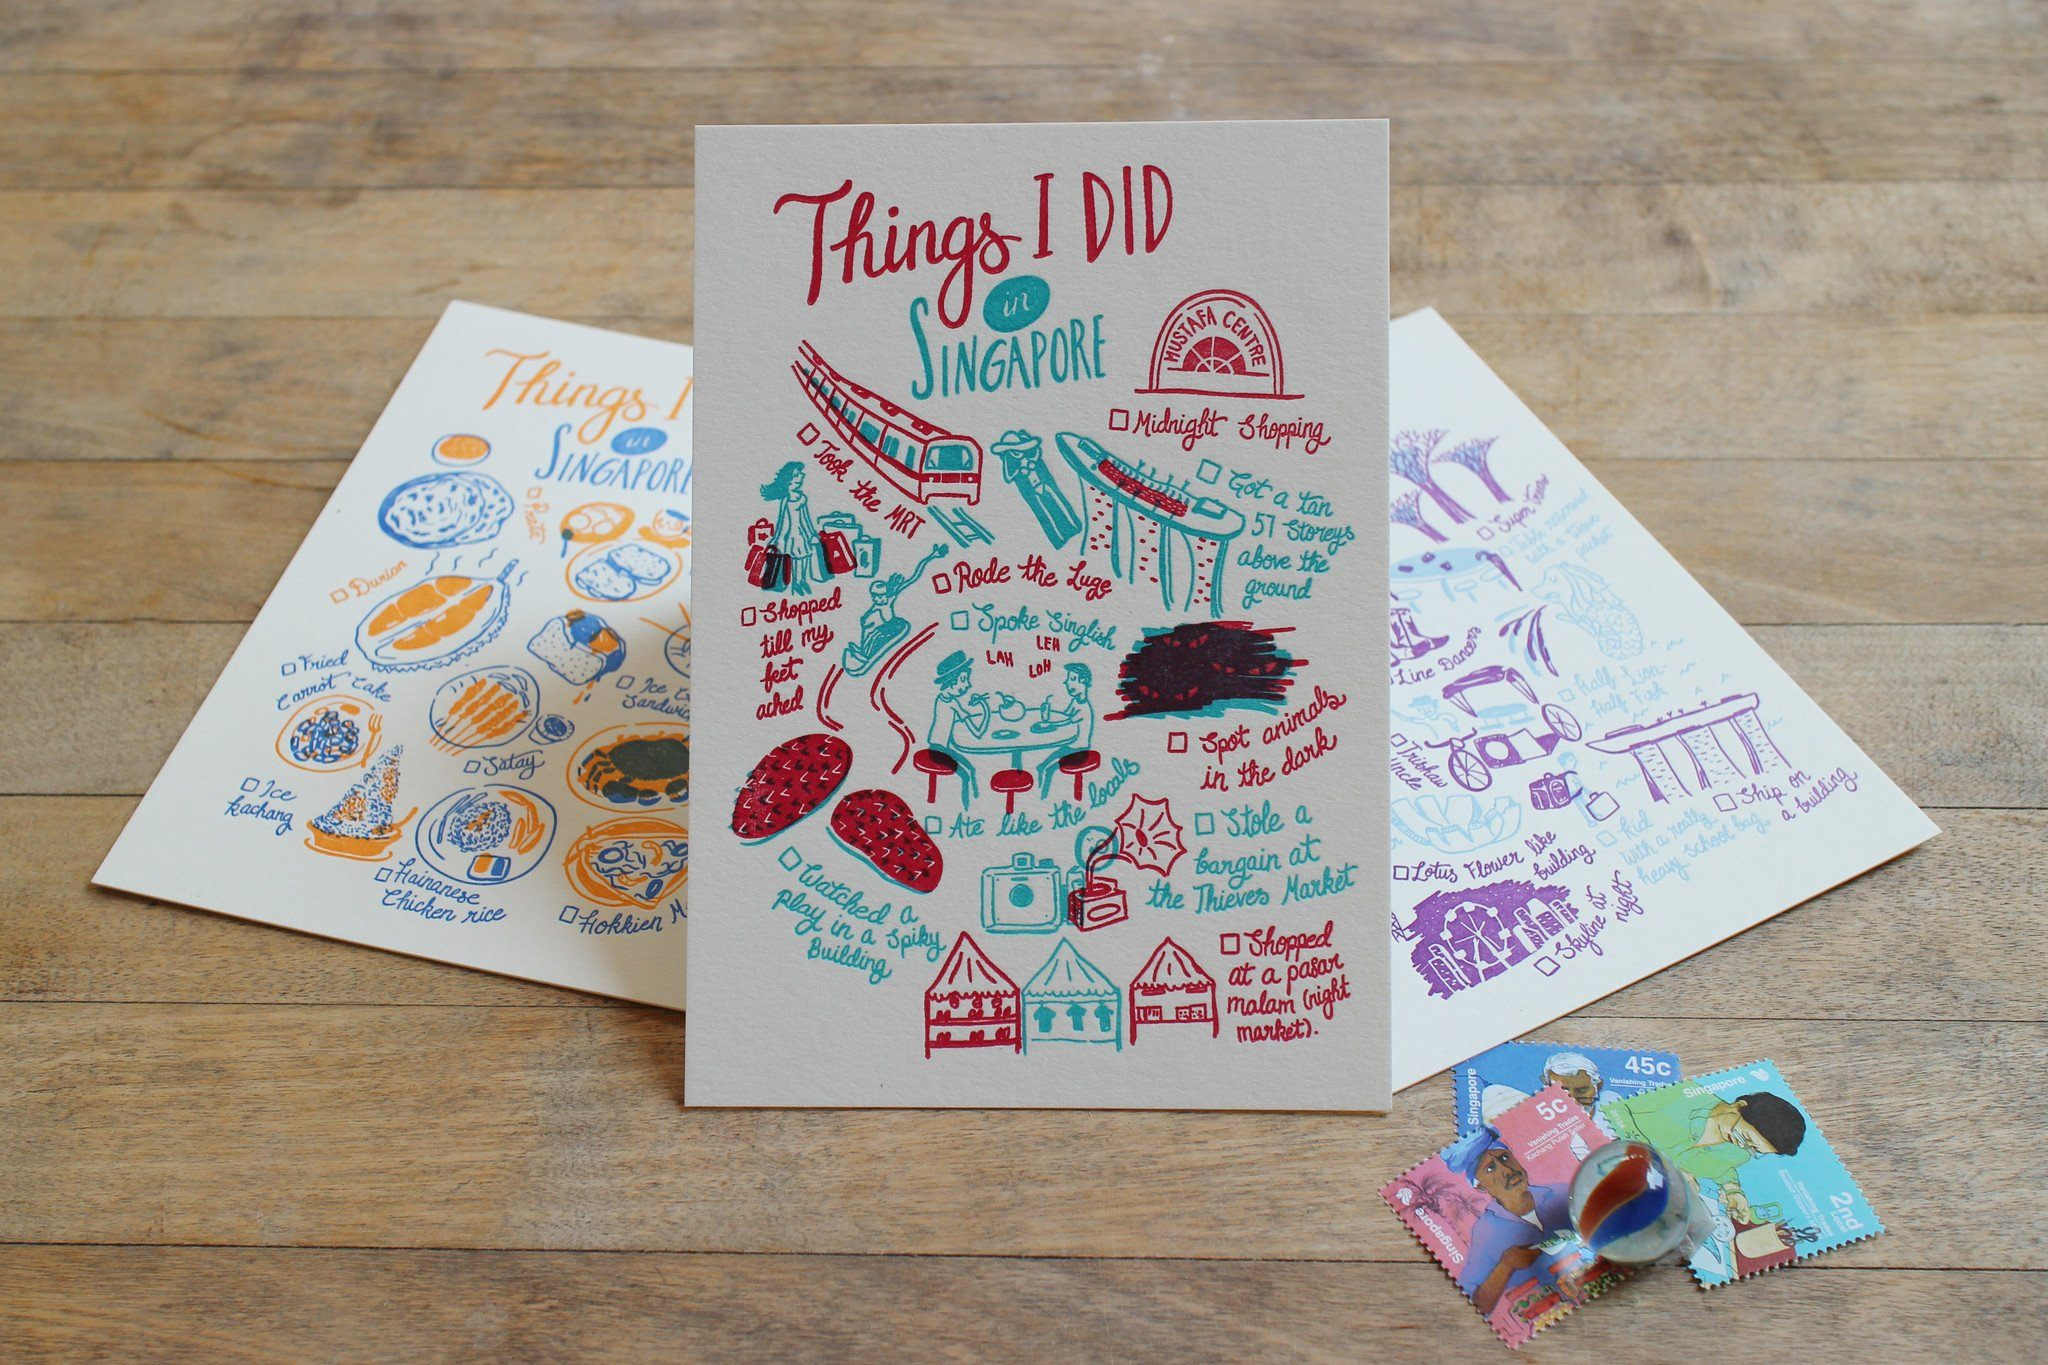 Things I Did In Singapore Postcard - Local Postcards - The Fingersmith Letterpress - Naiise